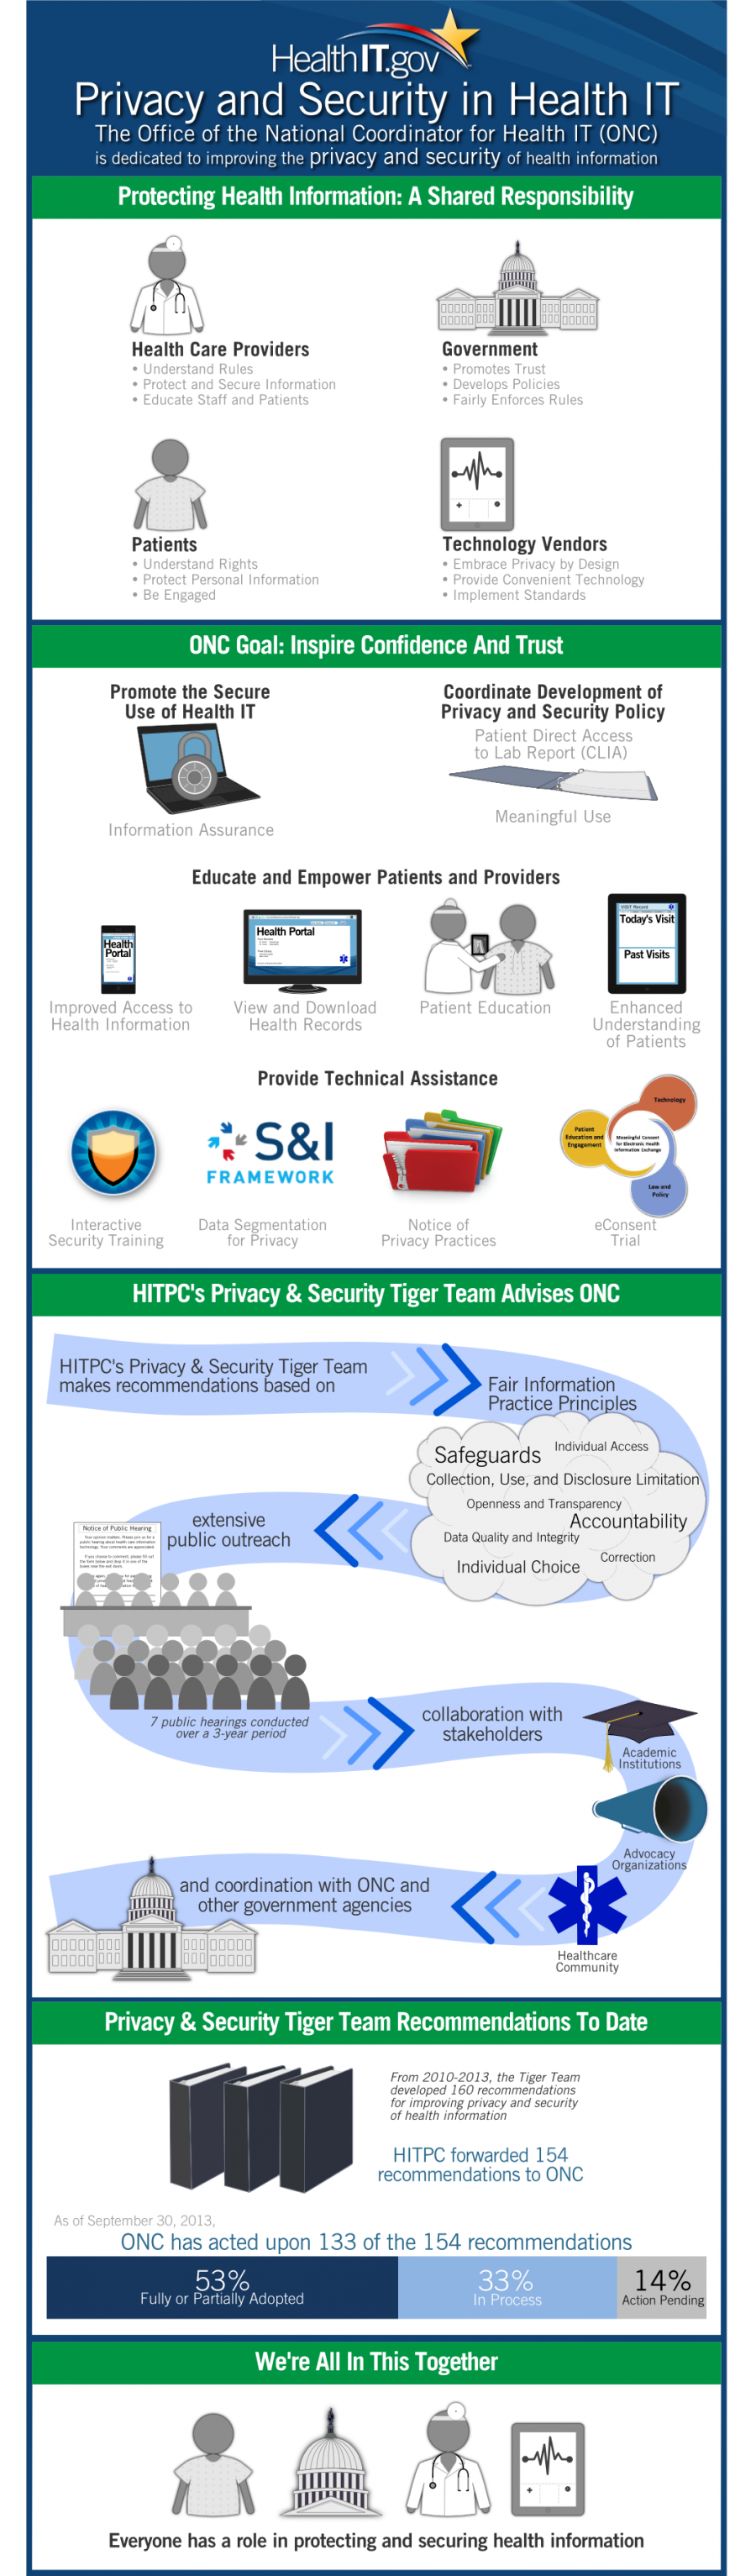 Privacy and Security In HealthIT Infographic Image